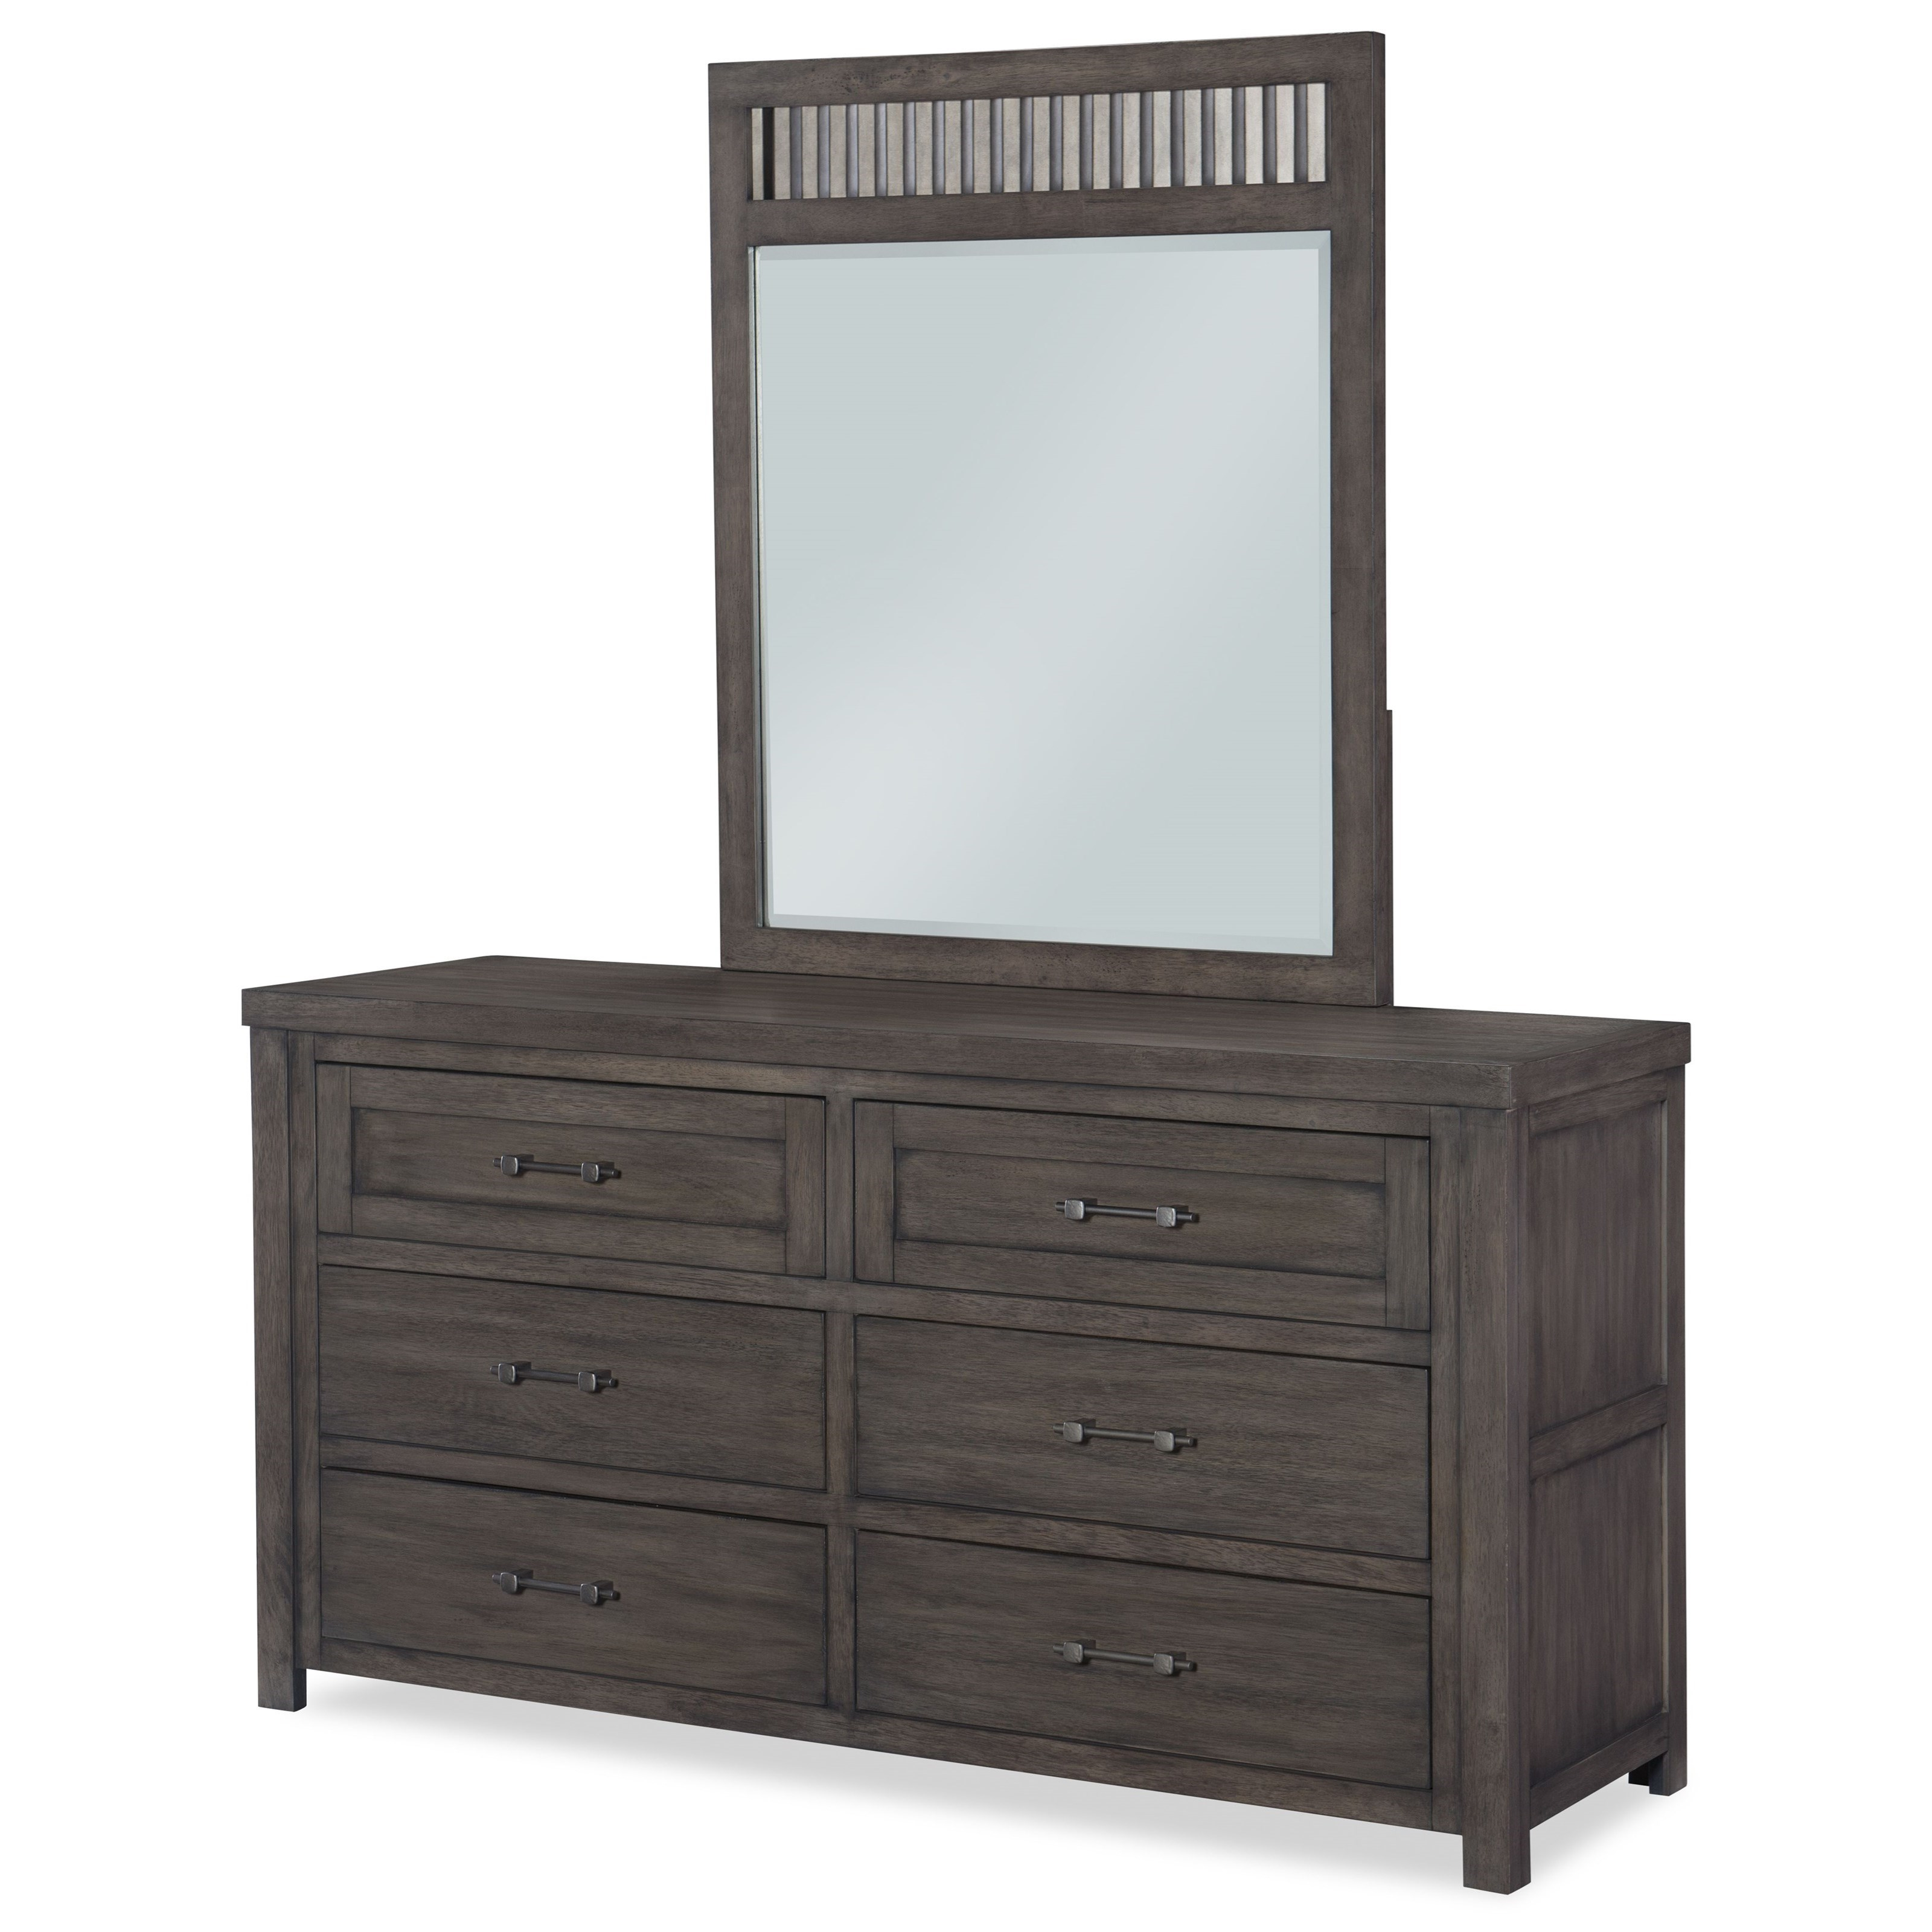 Bunkhouse Dresser and Mirror by Legacy Classic Kids at Darvin Furniture